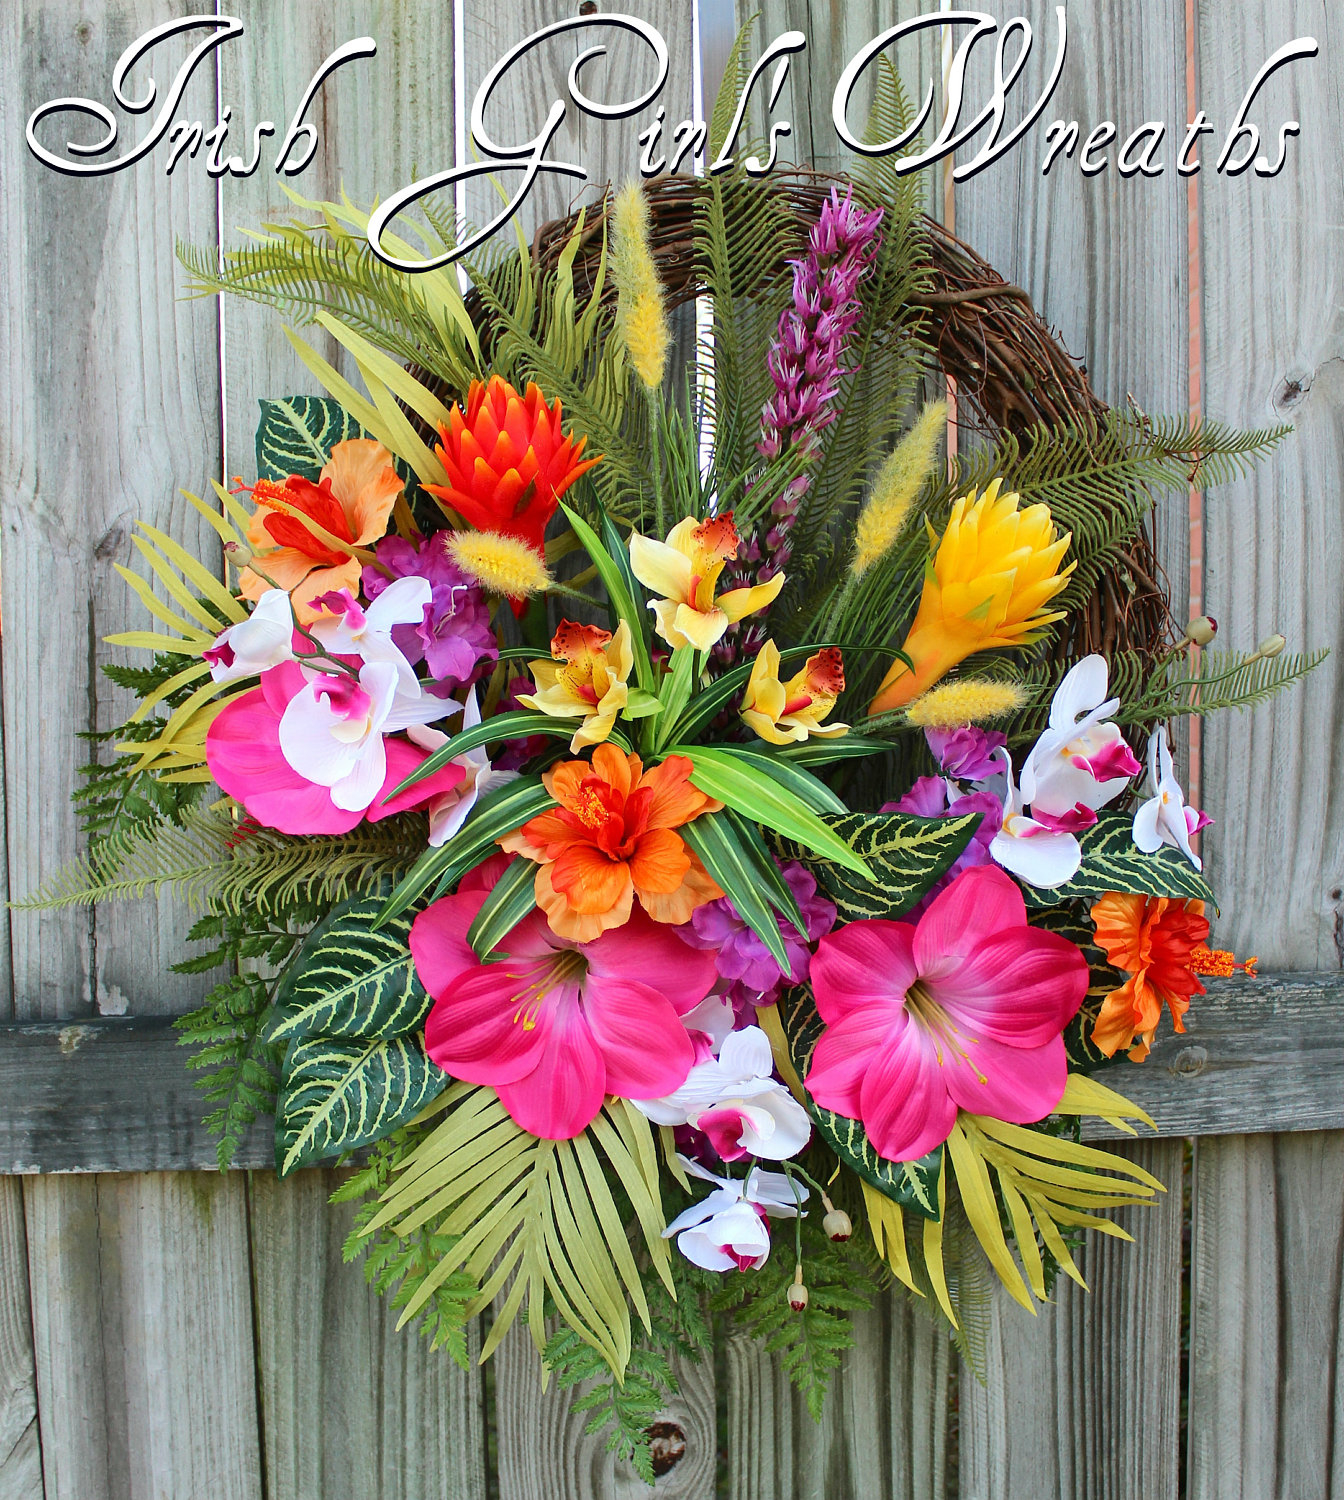 Tropical Island Luau Garden Wreath, Large Summer Paradise Floral Wreath